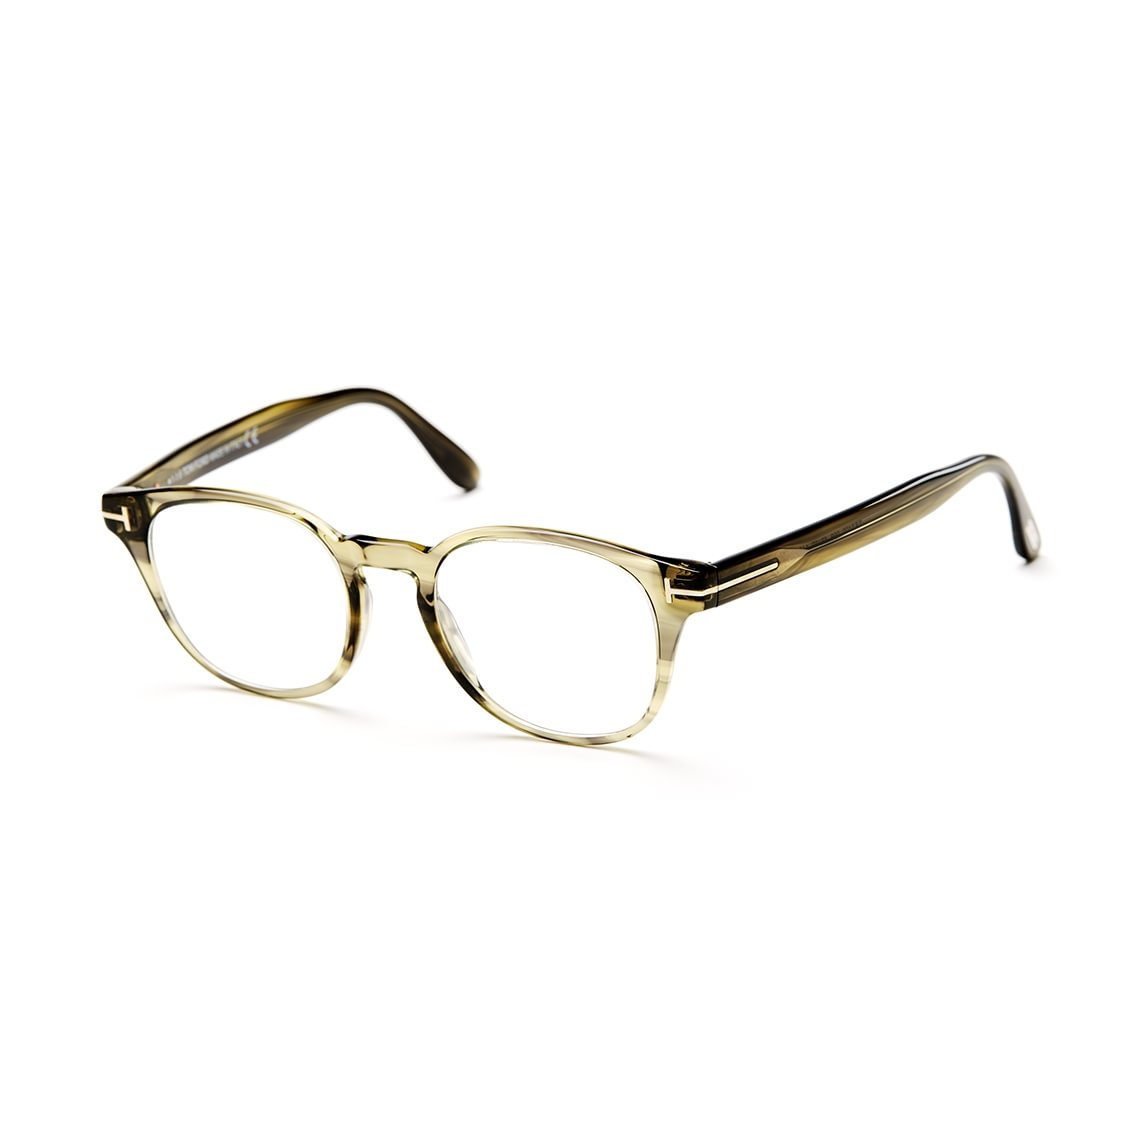 Tom Ford FT5400 098 48